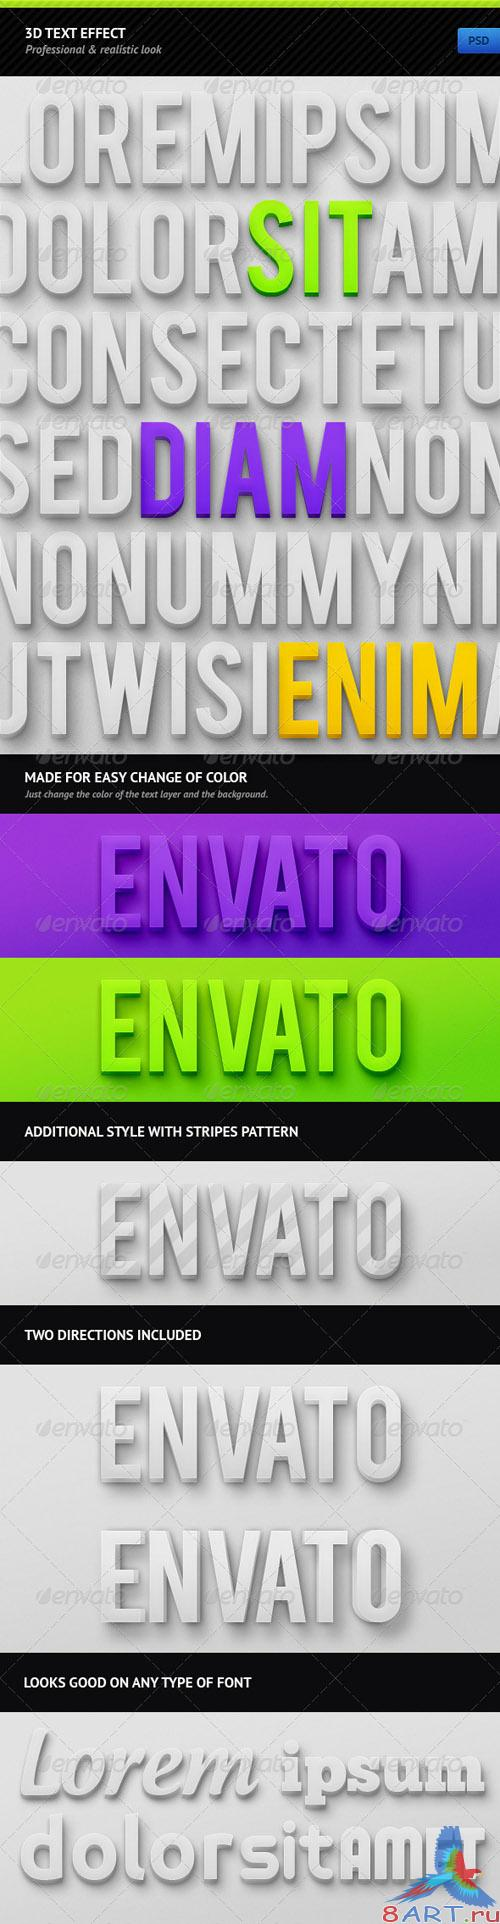 GraphicRiver 3D Text Effect - REUPLOAD